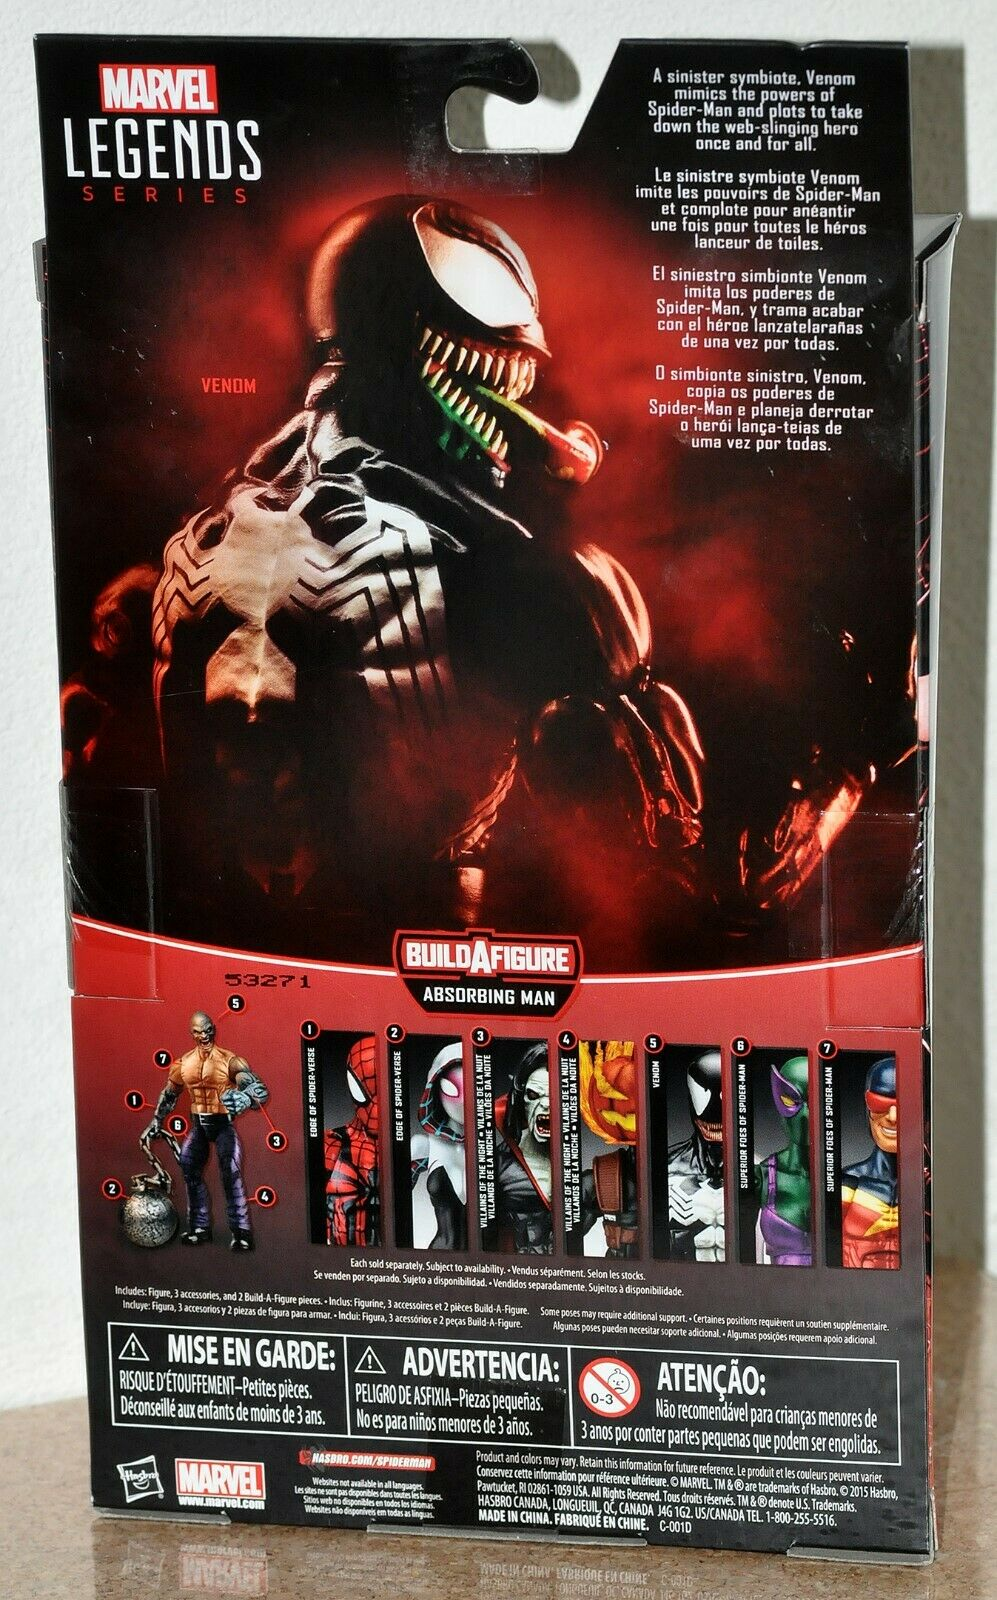 Marvel Legends Spider-Man Venom Absorbing Man Head BAF MOC MOC MOC VHTF Hasbro 2016 a51cfe